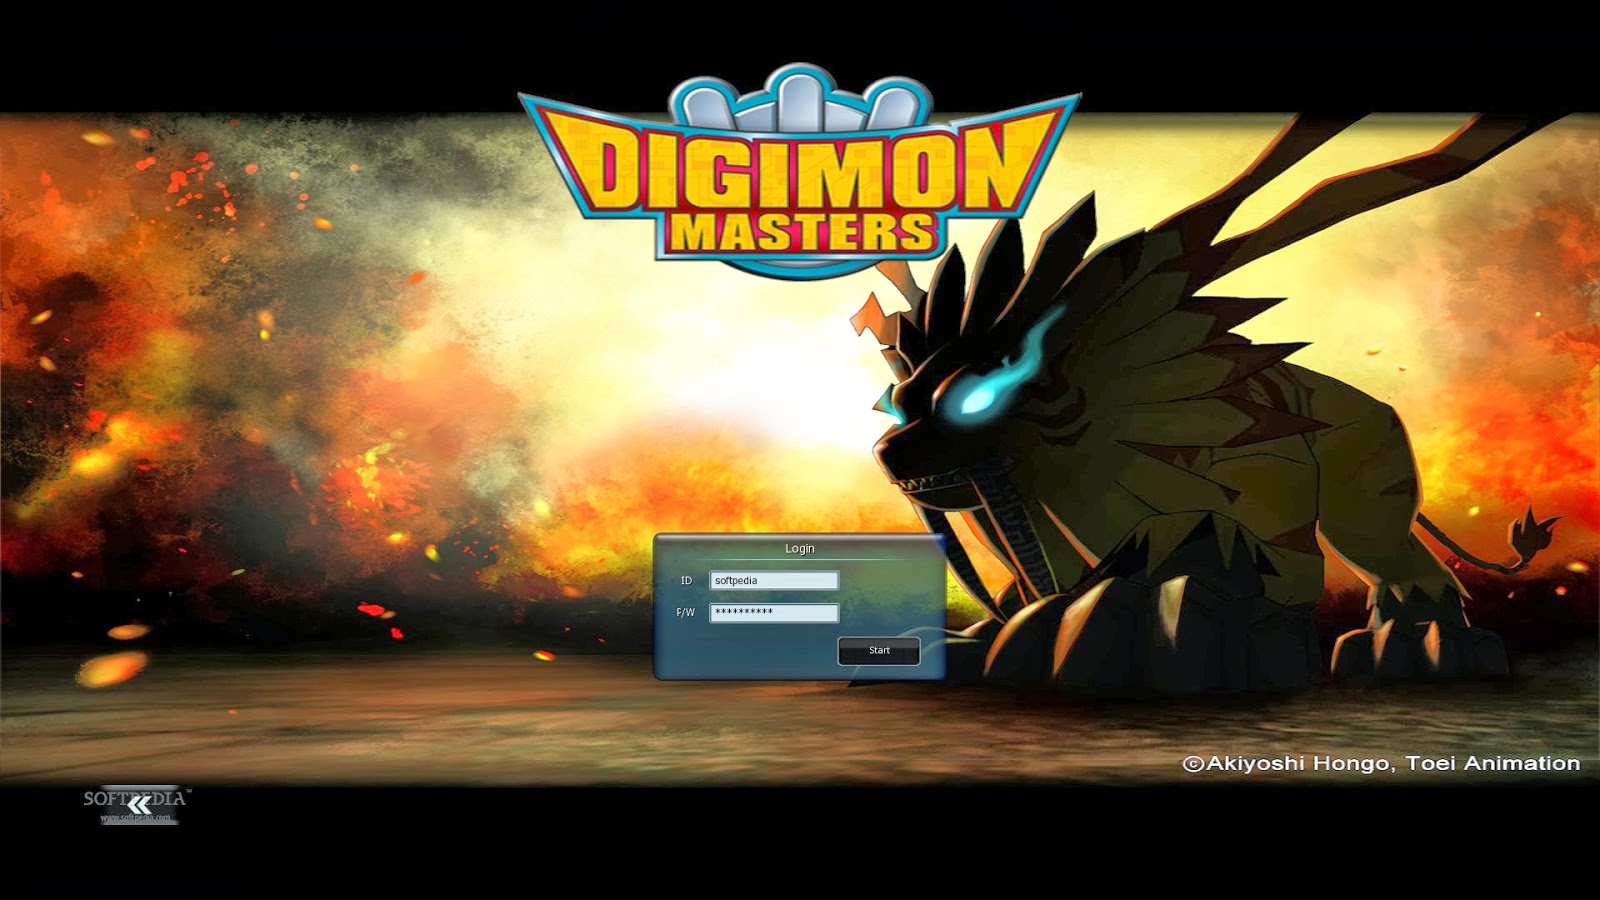 Download Digimon Masters Pc Game Online Offline We Have